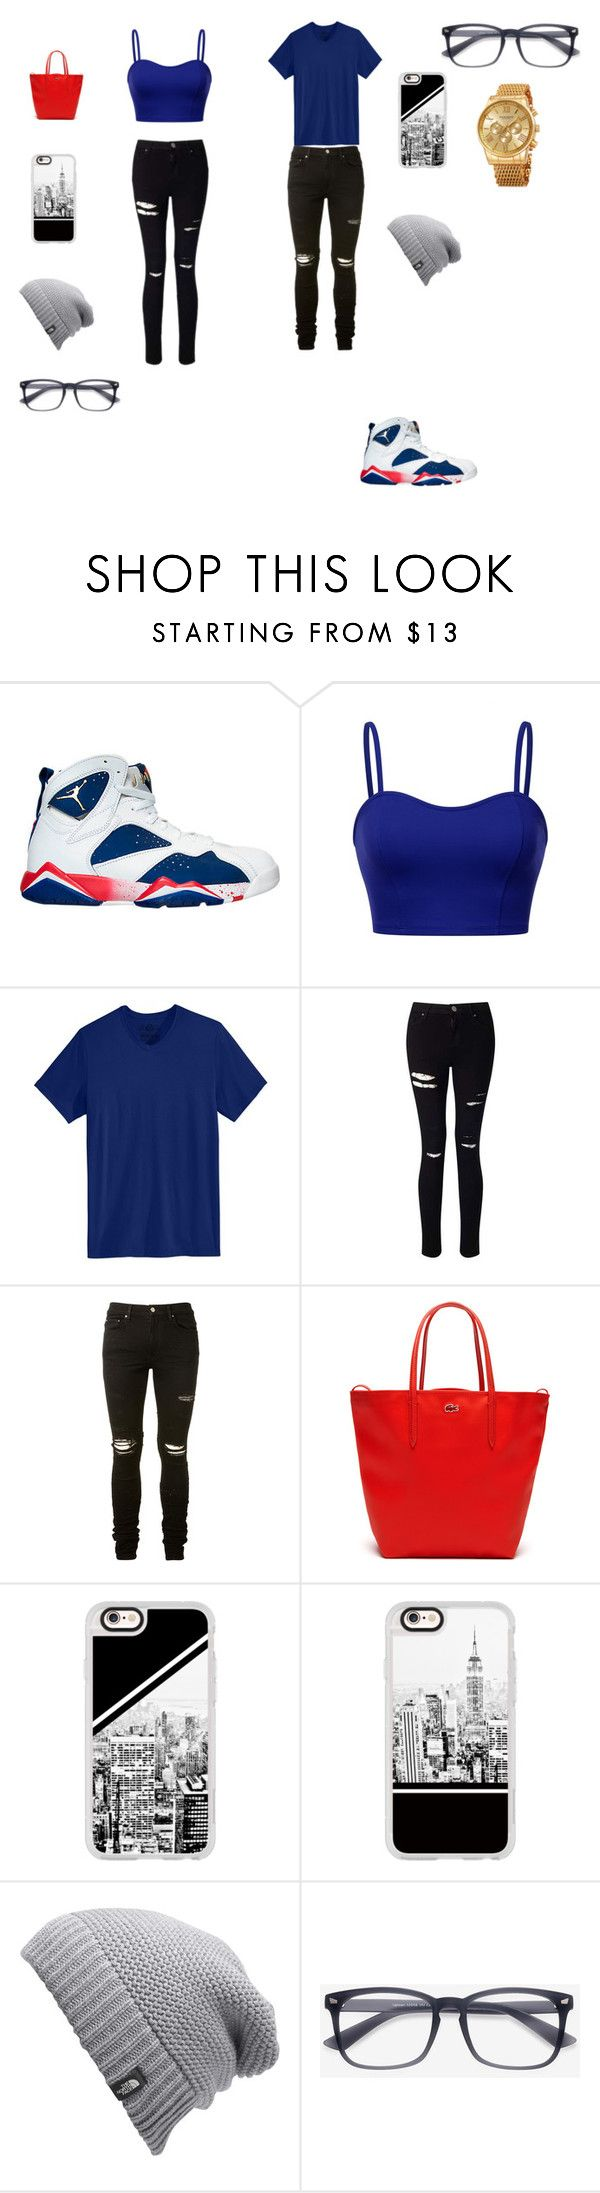 """bf and gf matching jordan outfit by:Emily styles"" by kimrlanier on Polyvore featuring NIKE, American Rag Cie, Miss Selfridge, AMIRI, Lacoste, Casetify, The North Face and Akribos XXIV"